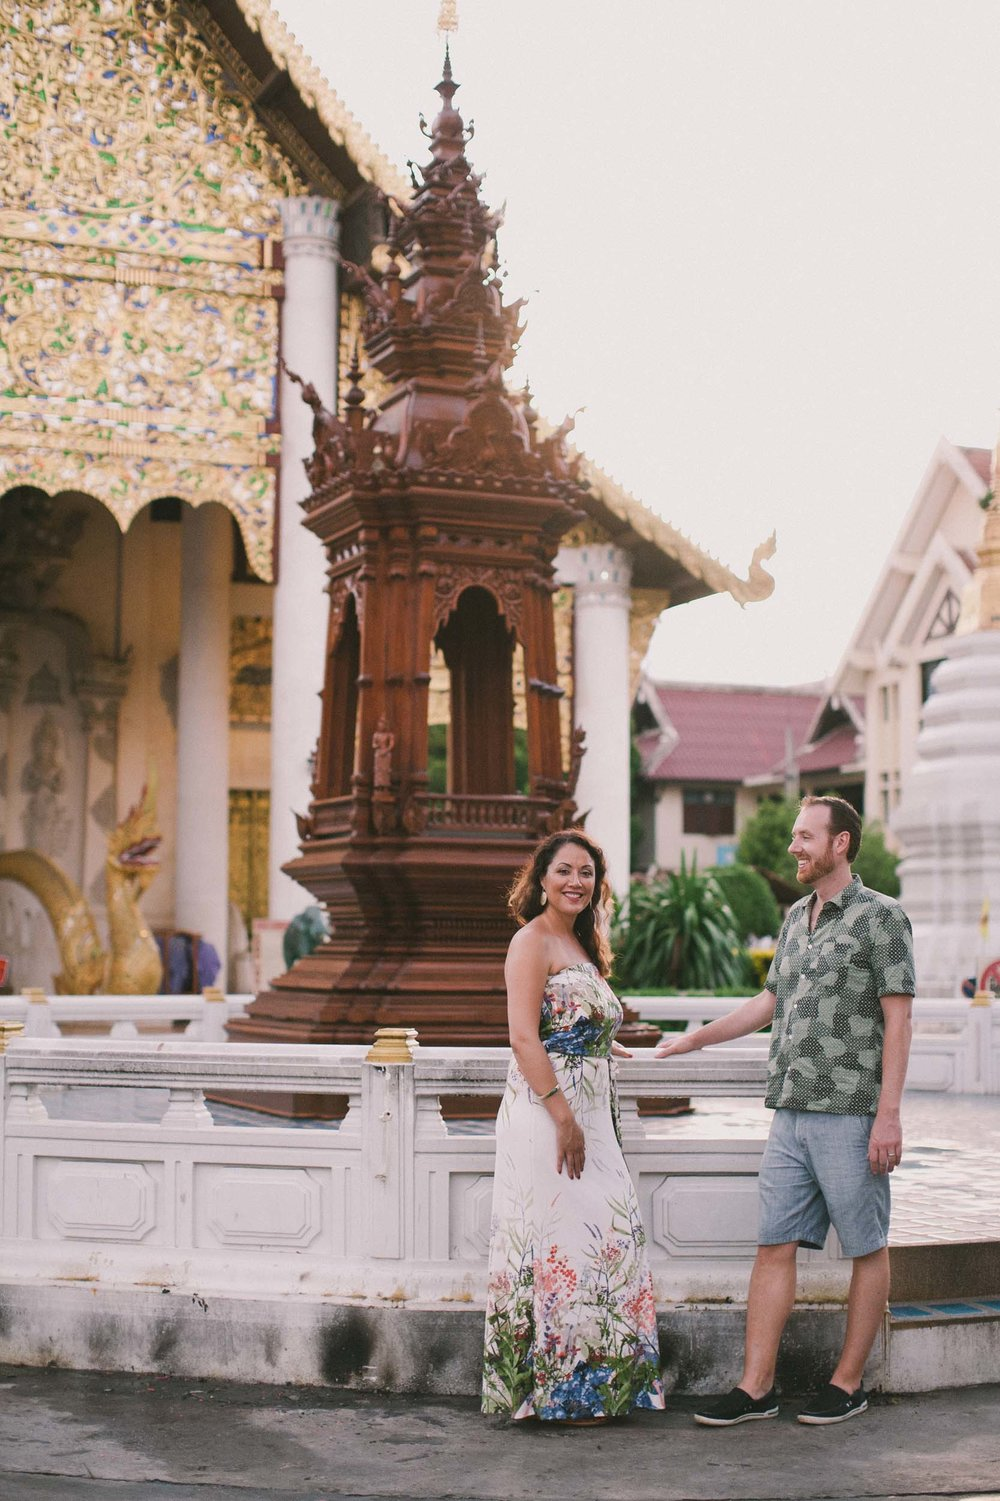 Chiang Mai vacation photographer